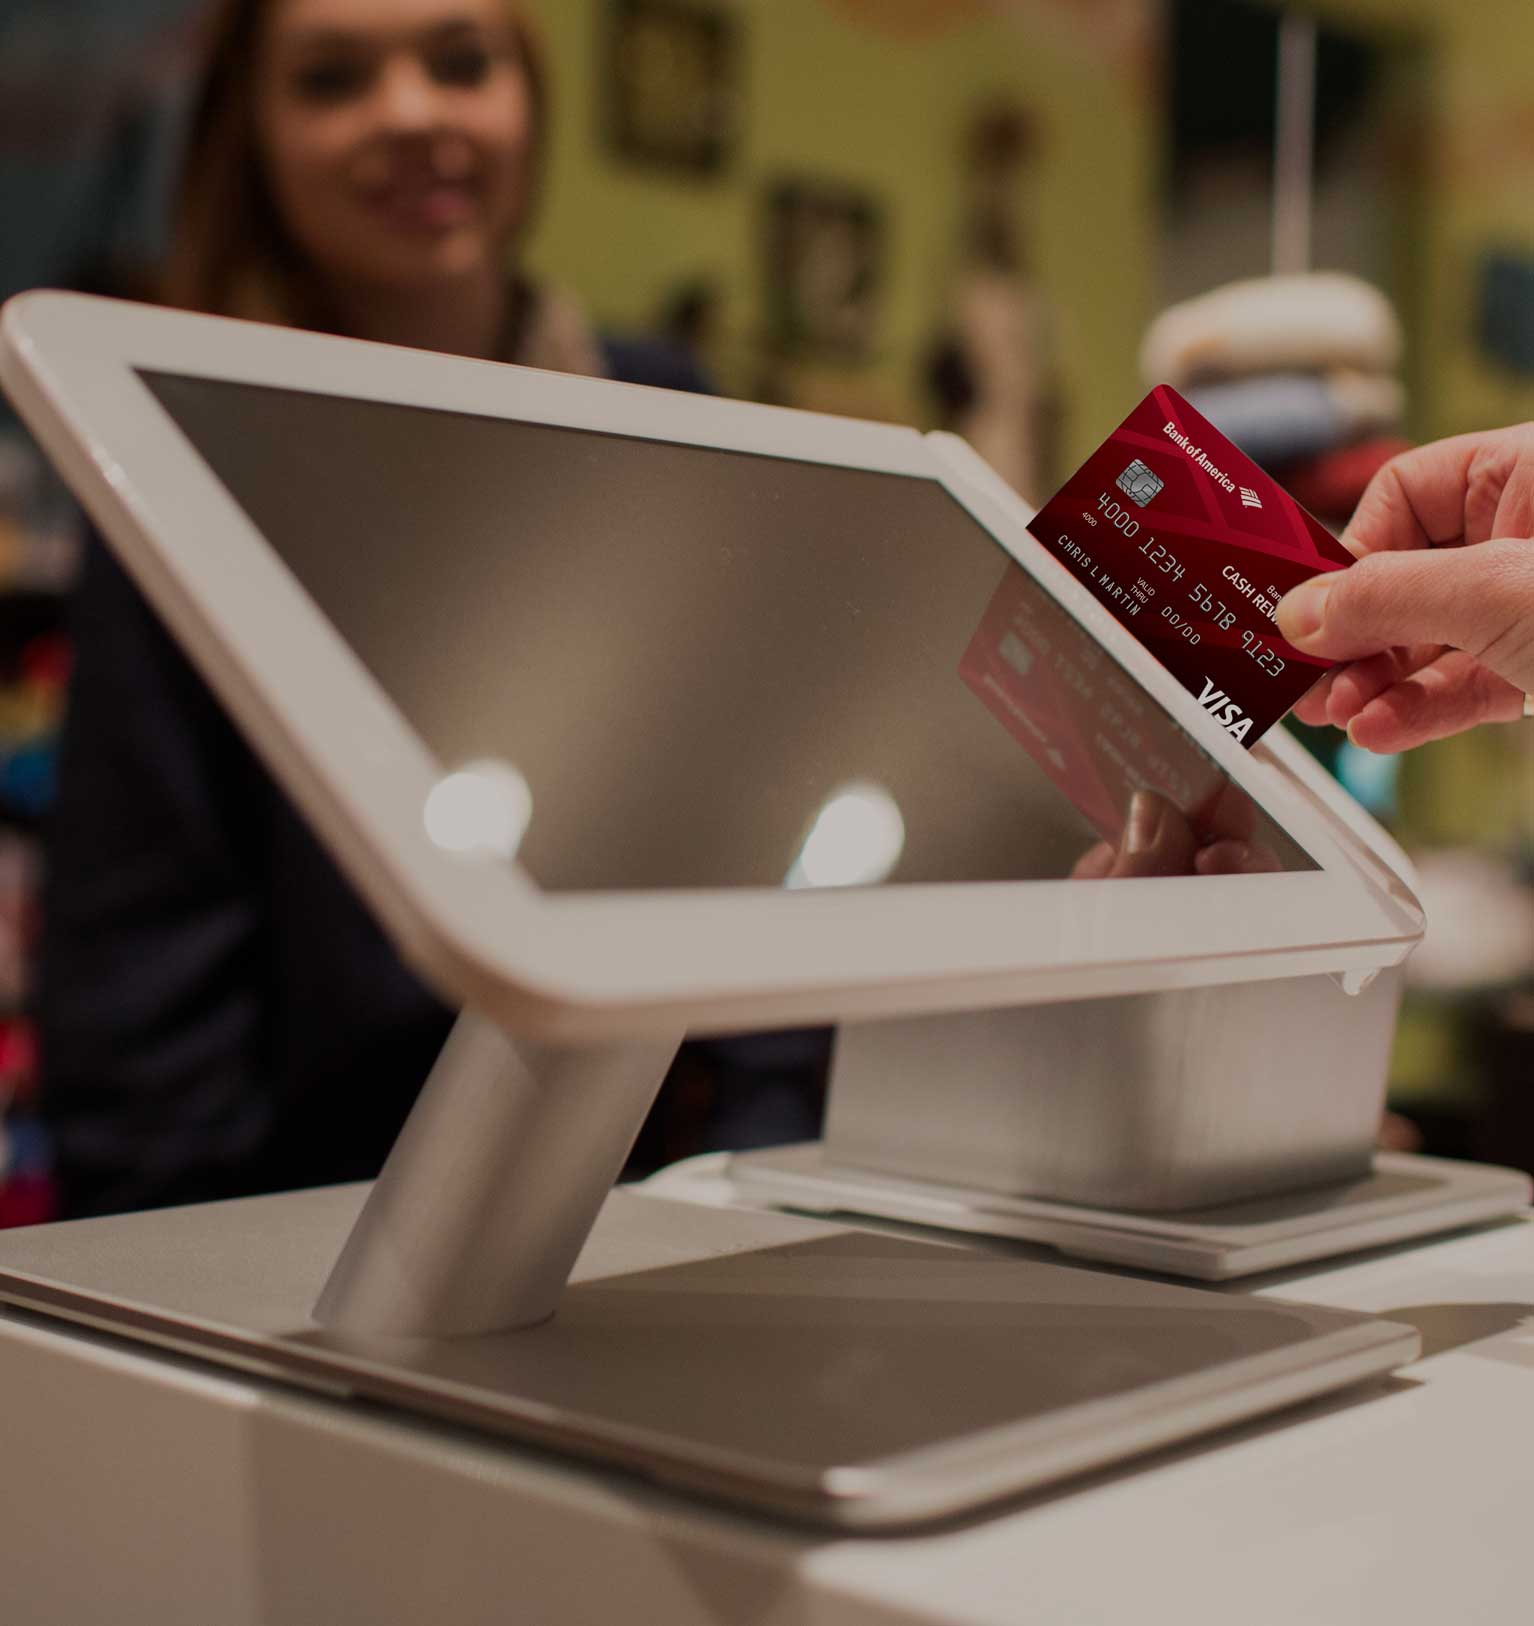 Payment credit card processing how does it work bank of america merchant services is committed to providing processing solutions to fit your needs payment processing small business credit card reheart Choice Image